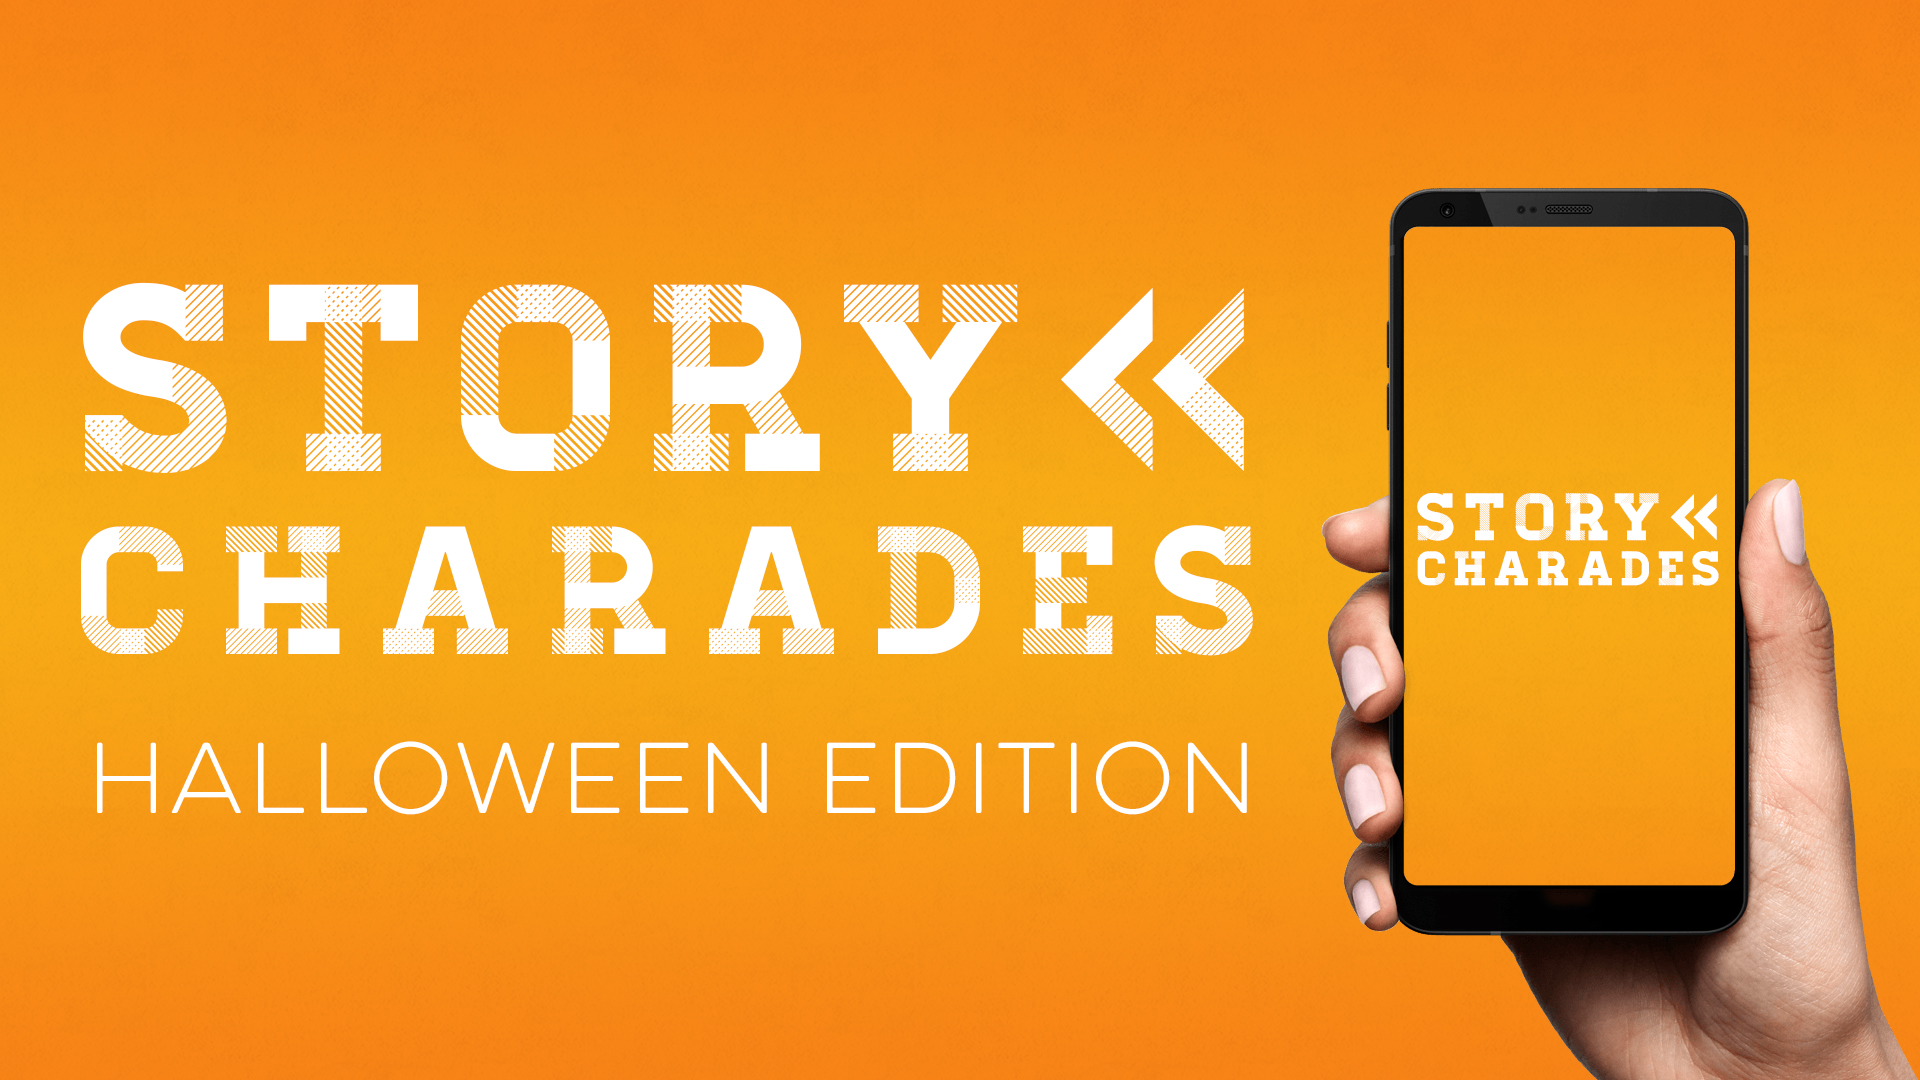 Story Charades Halloween Edition